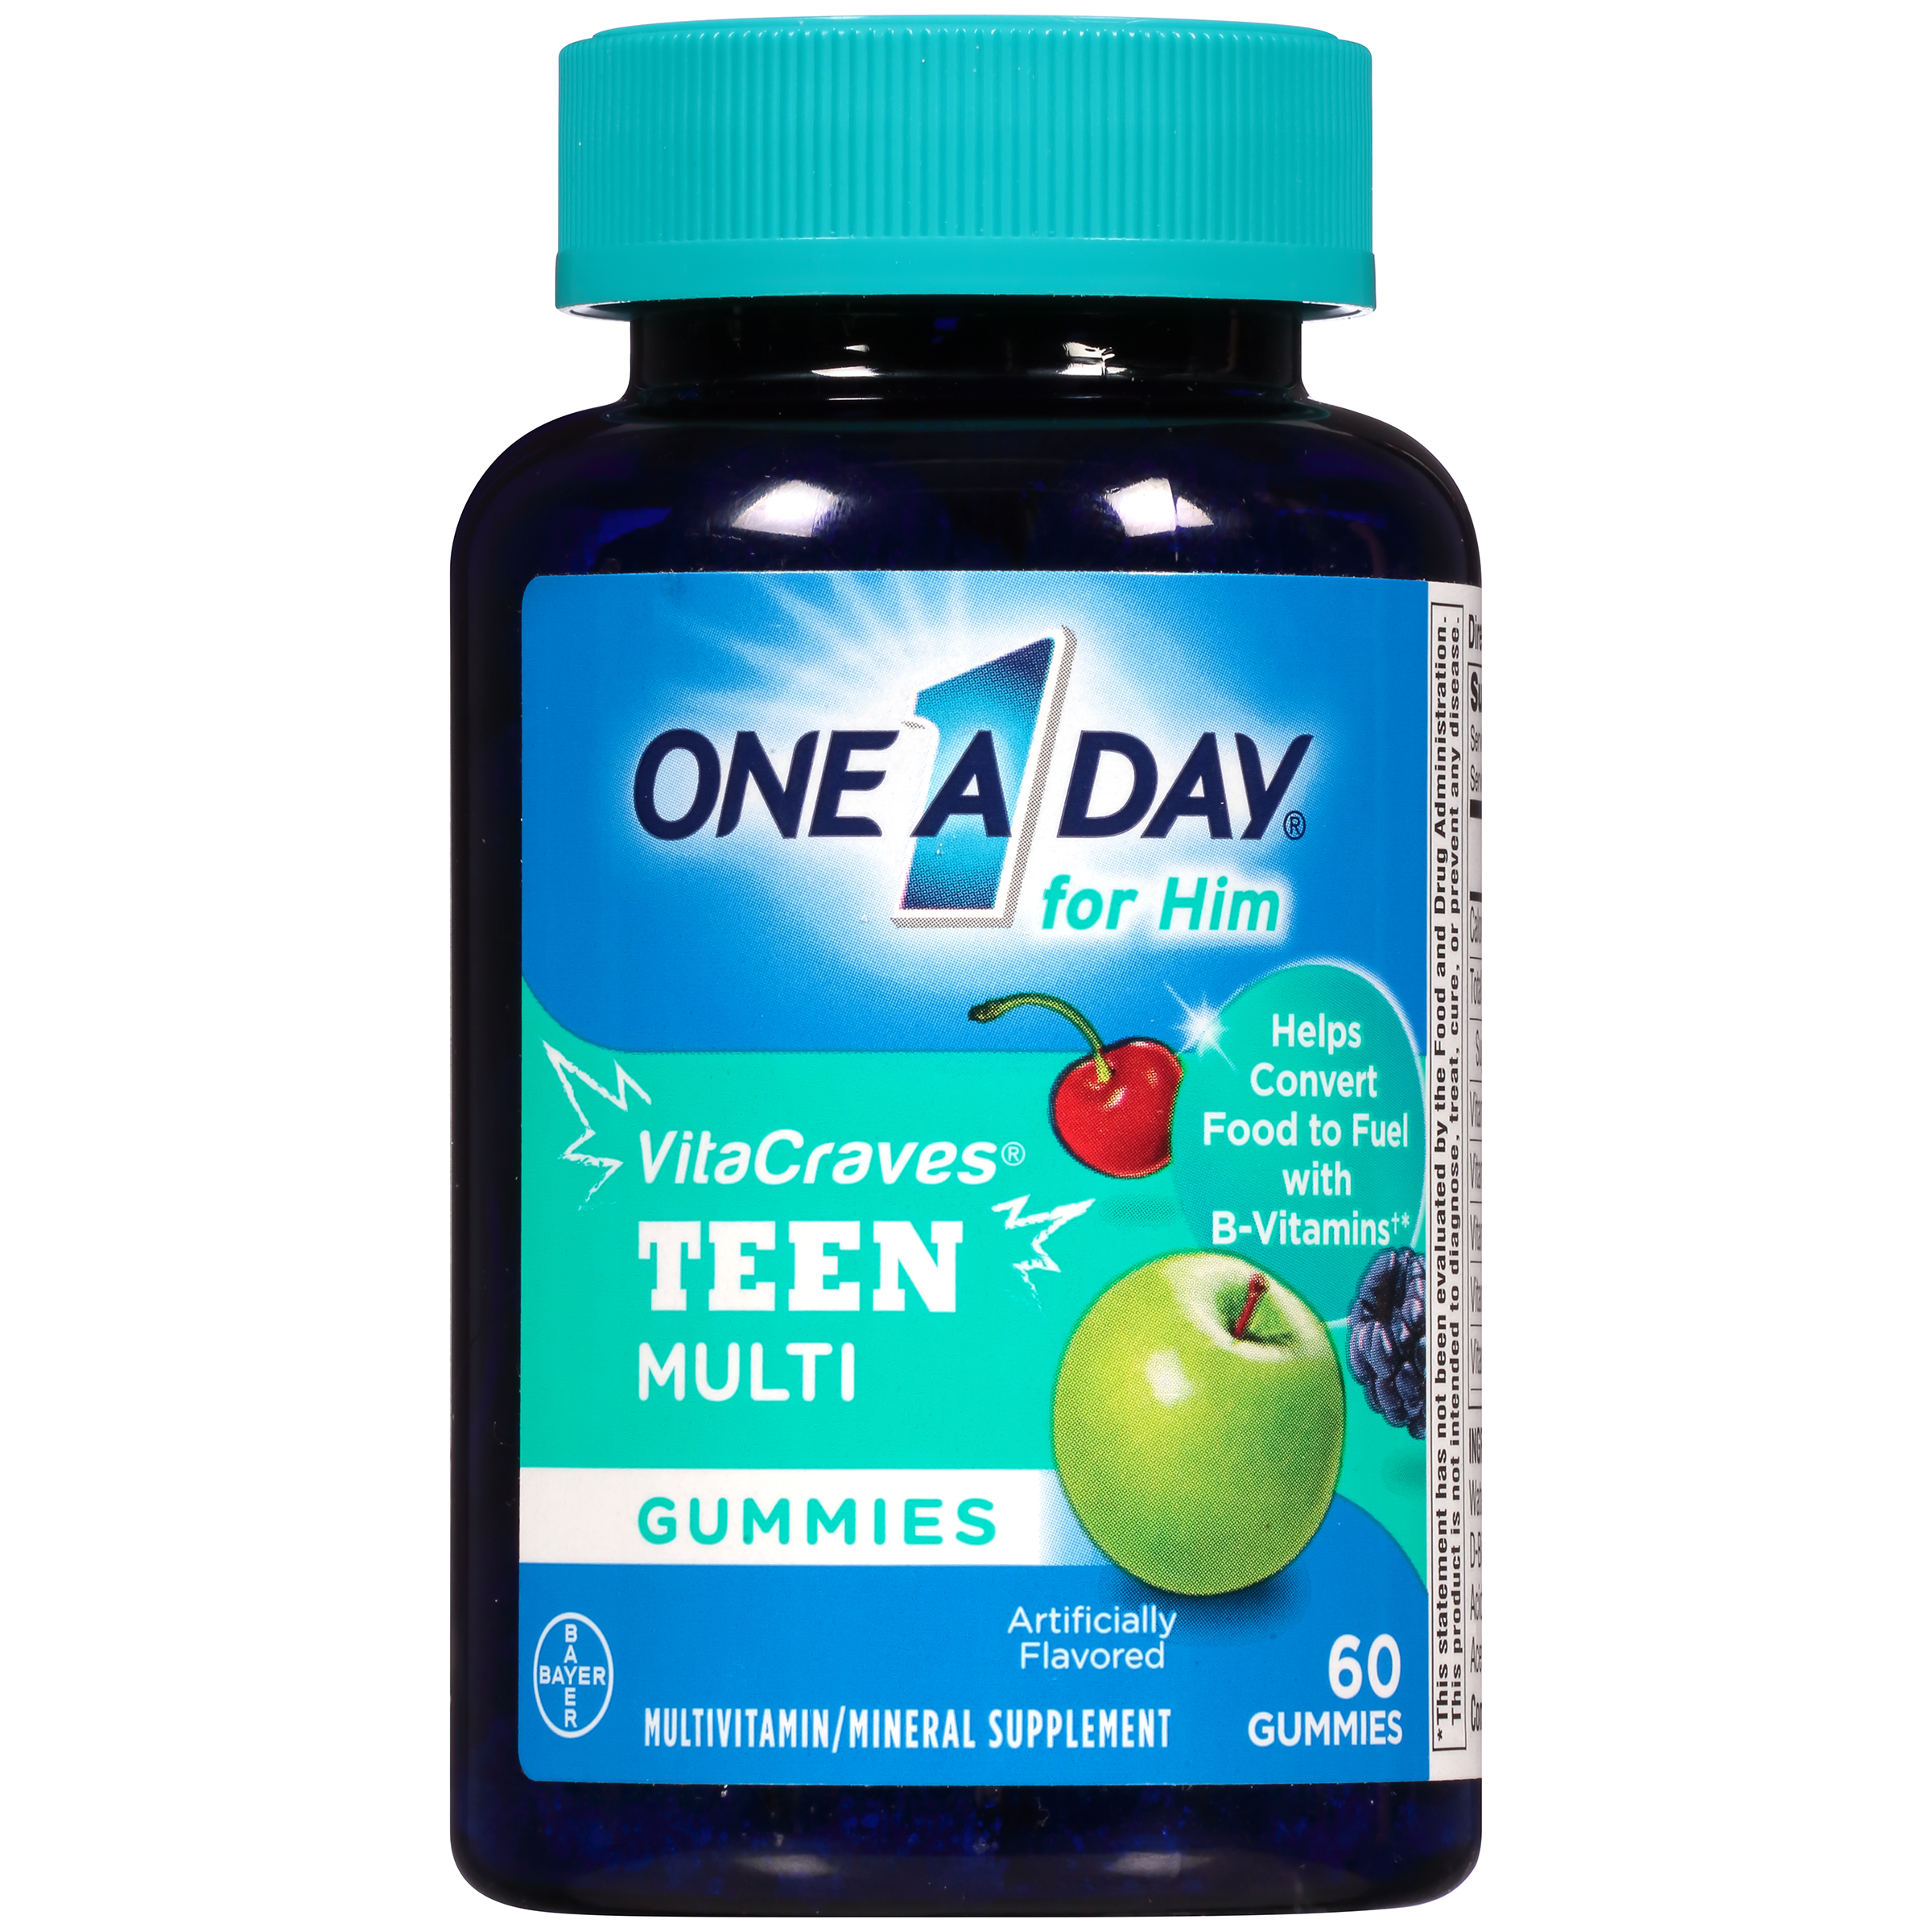 One A Day VitaCraves Teen For Him Multivitamin Gummies Supplement with Vitamins A, C, E, B3, B6, B12, Calcium, and Vitamin D, 60 ct.